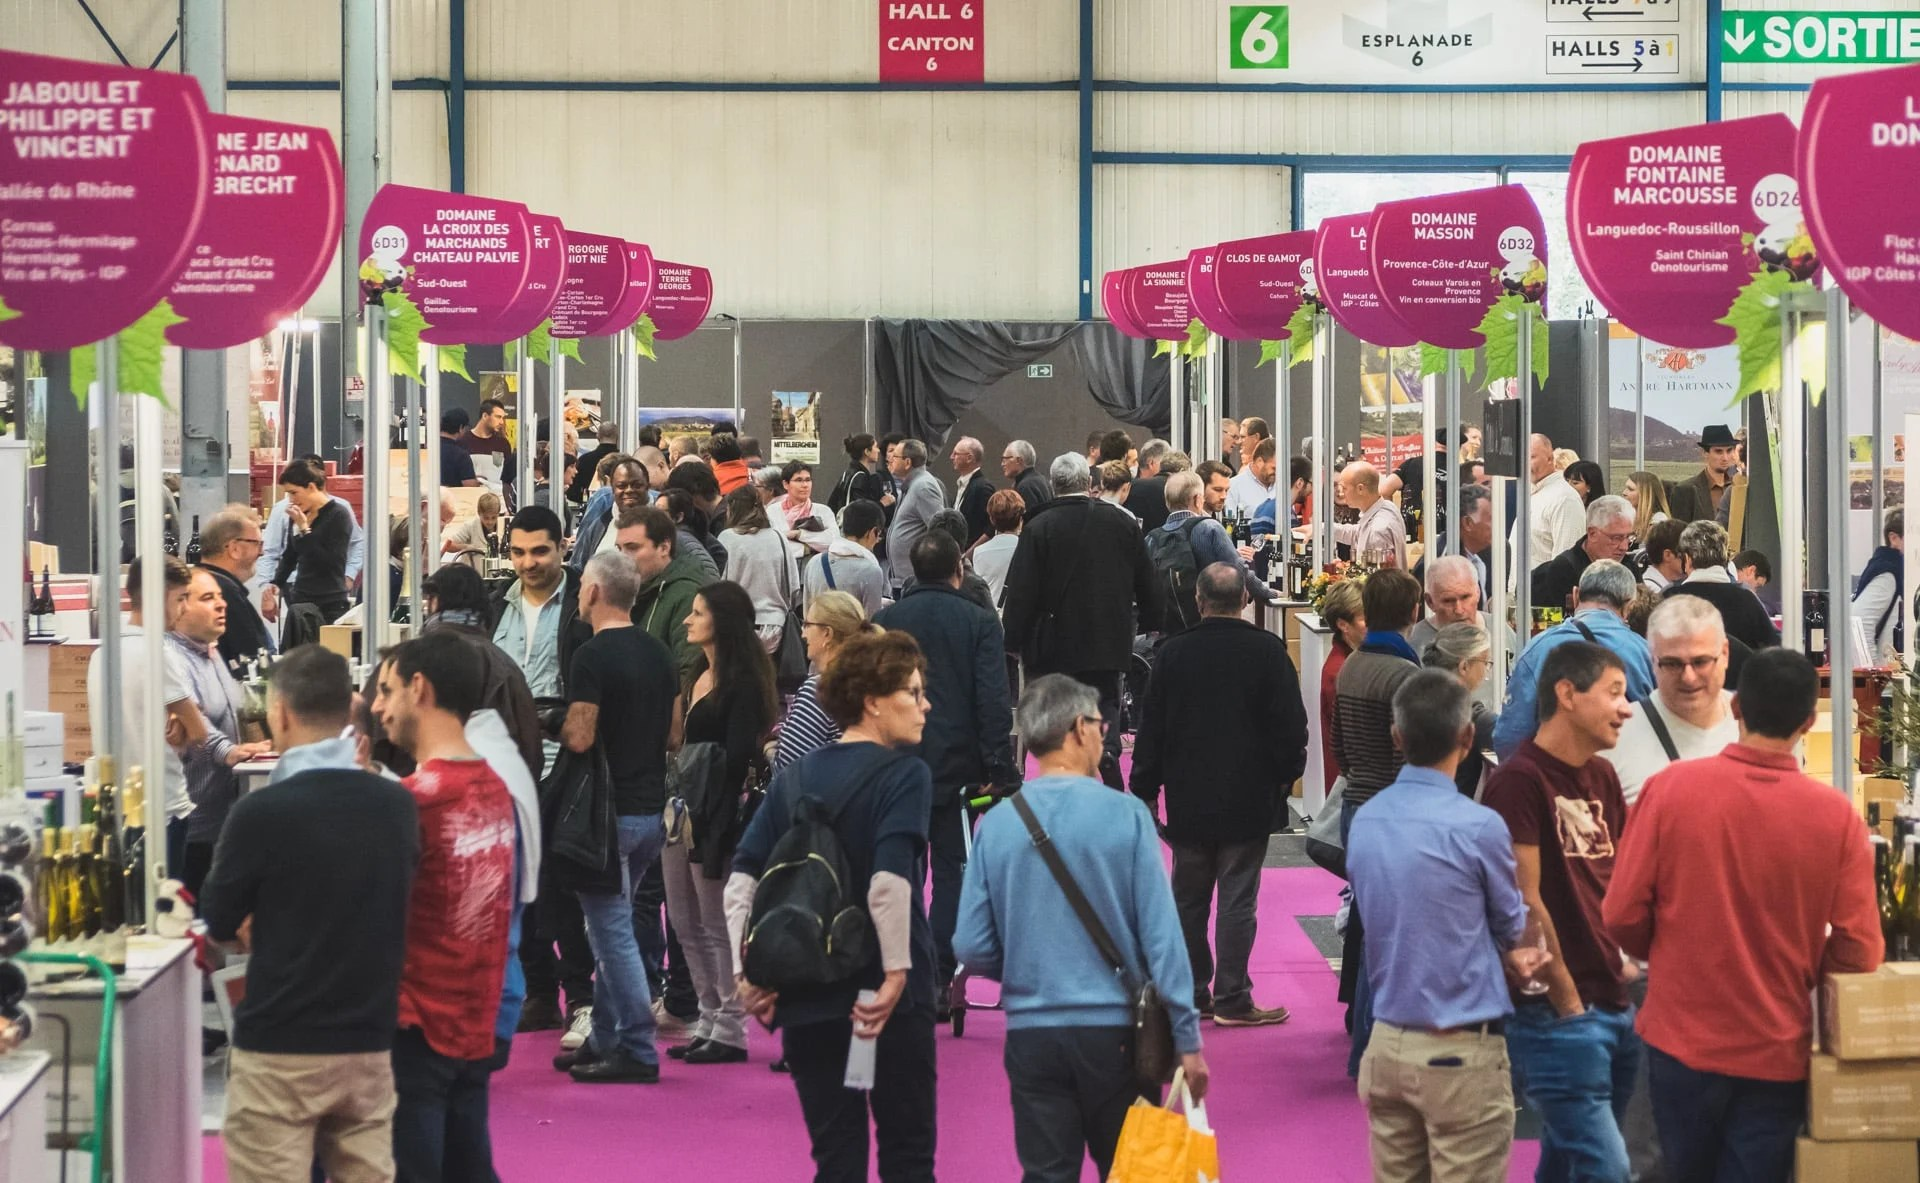 Salon Vin Et Terroir La Version Printanière Du Salon Vins Terroirs Ce Weekend à